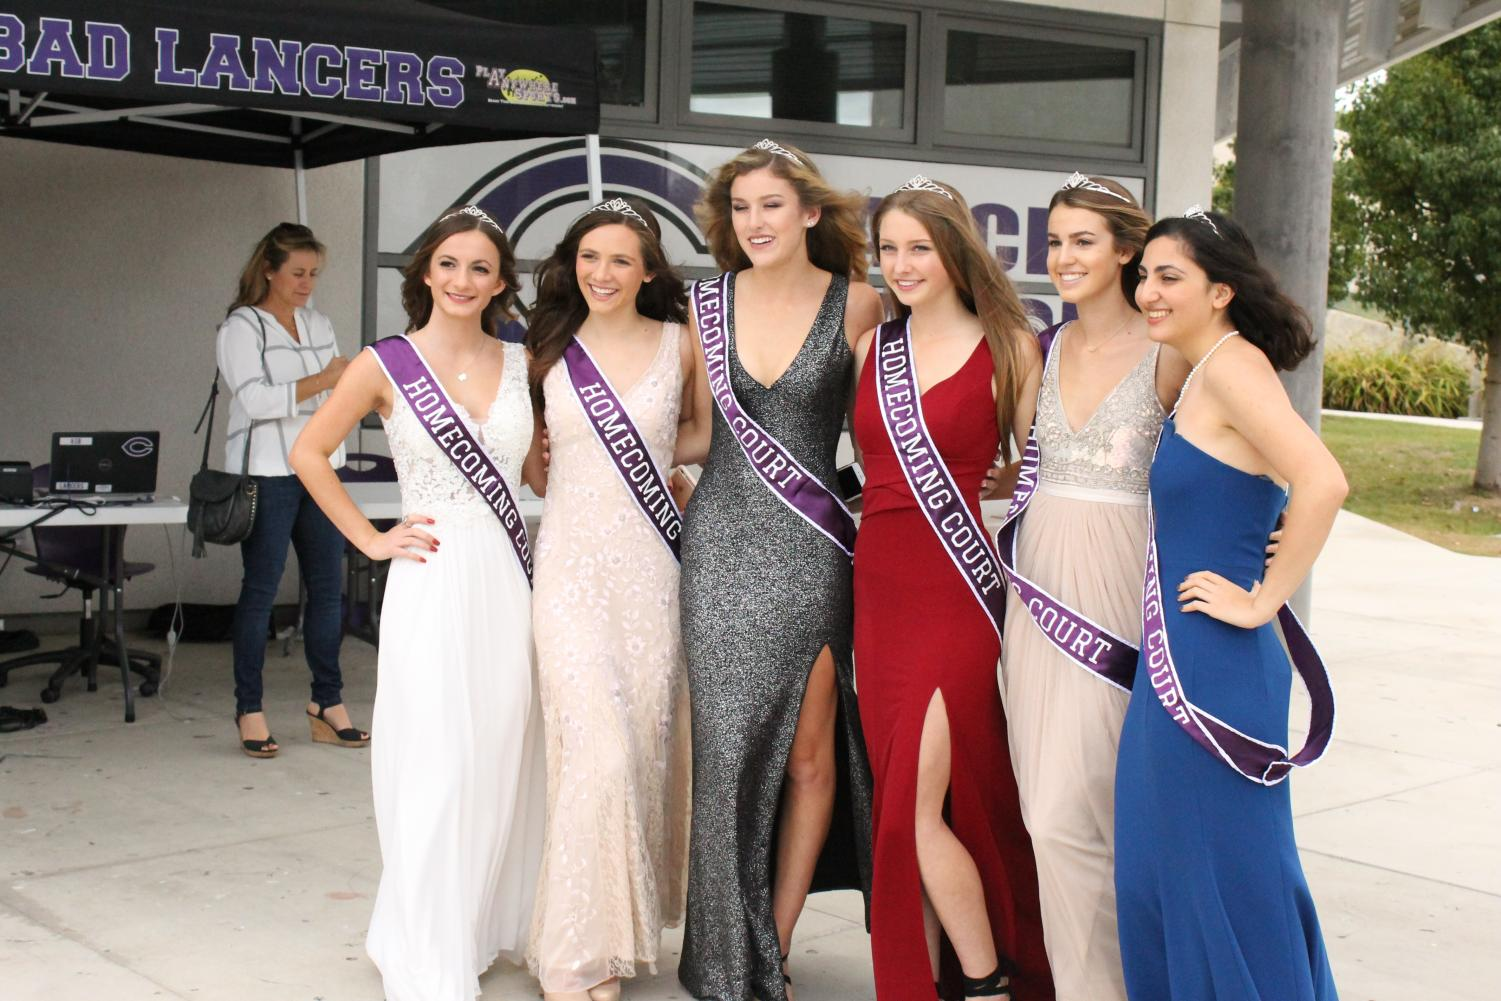 The Homecoming princesses pose for a photo before the assembly. The court attended the dance on Saturday night, and spent the night dancing with friends.